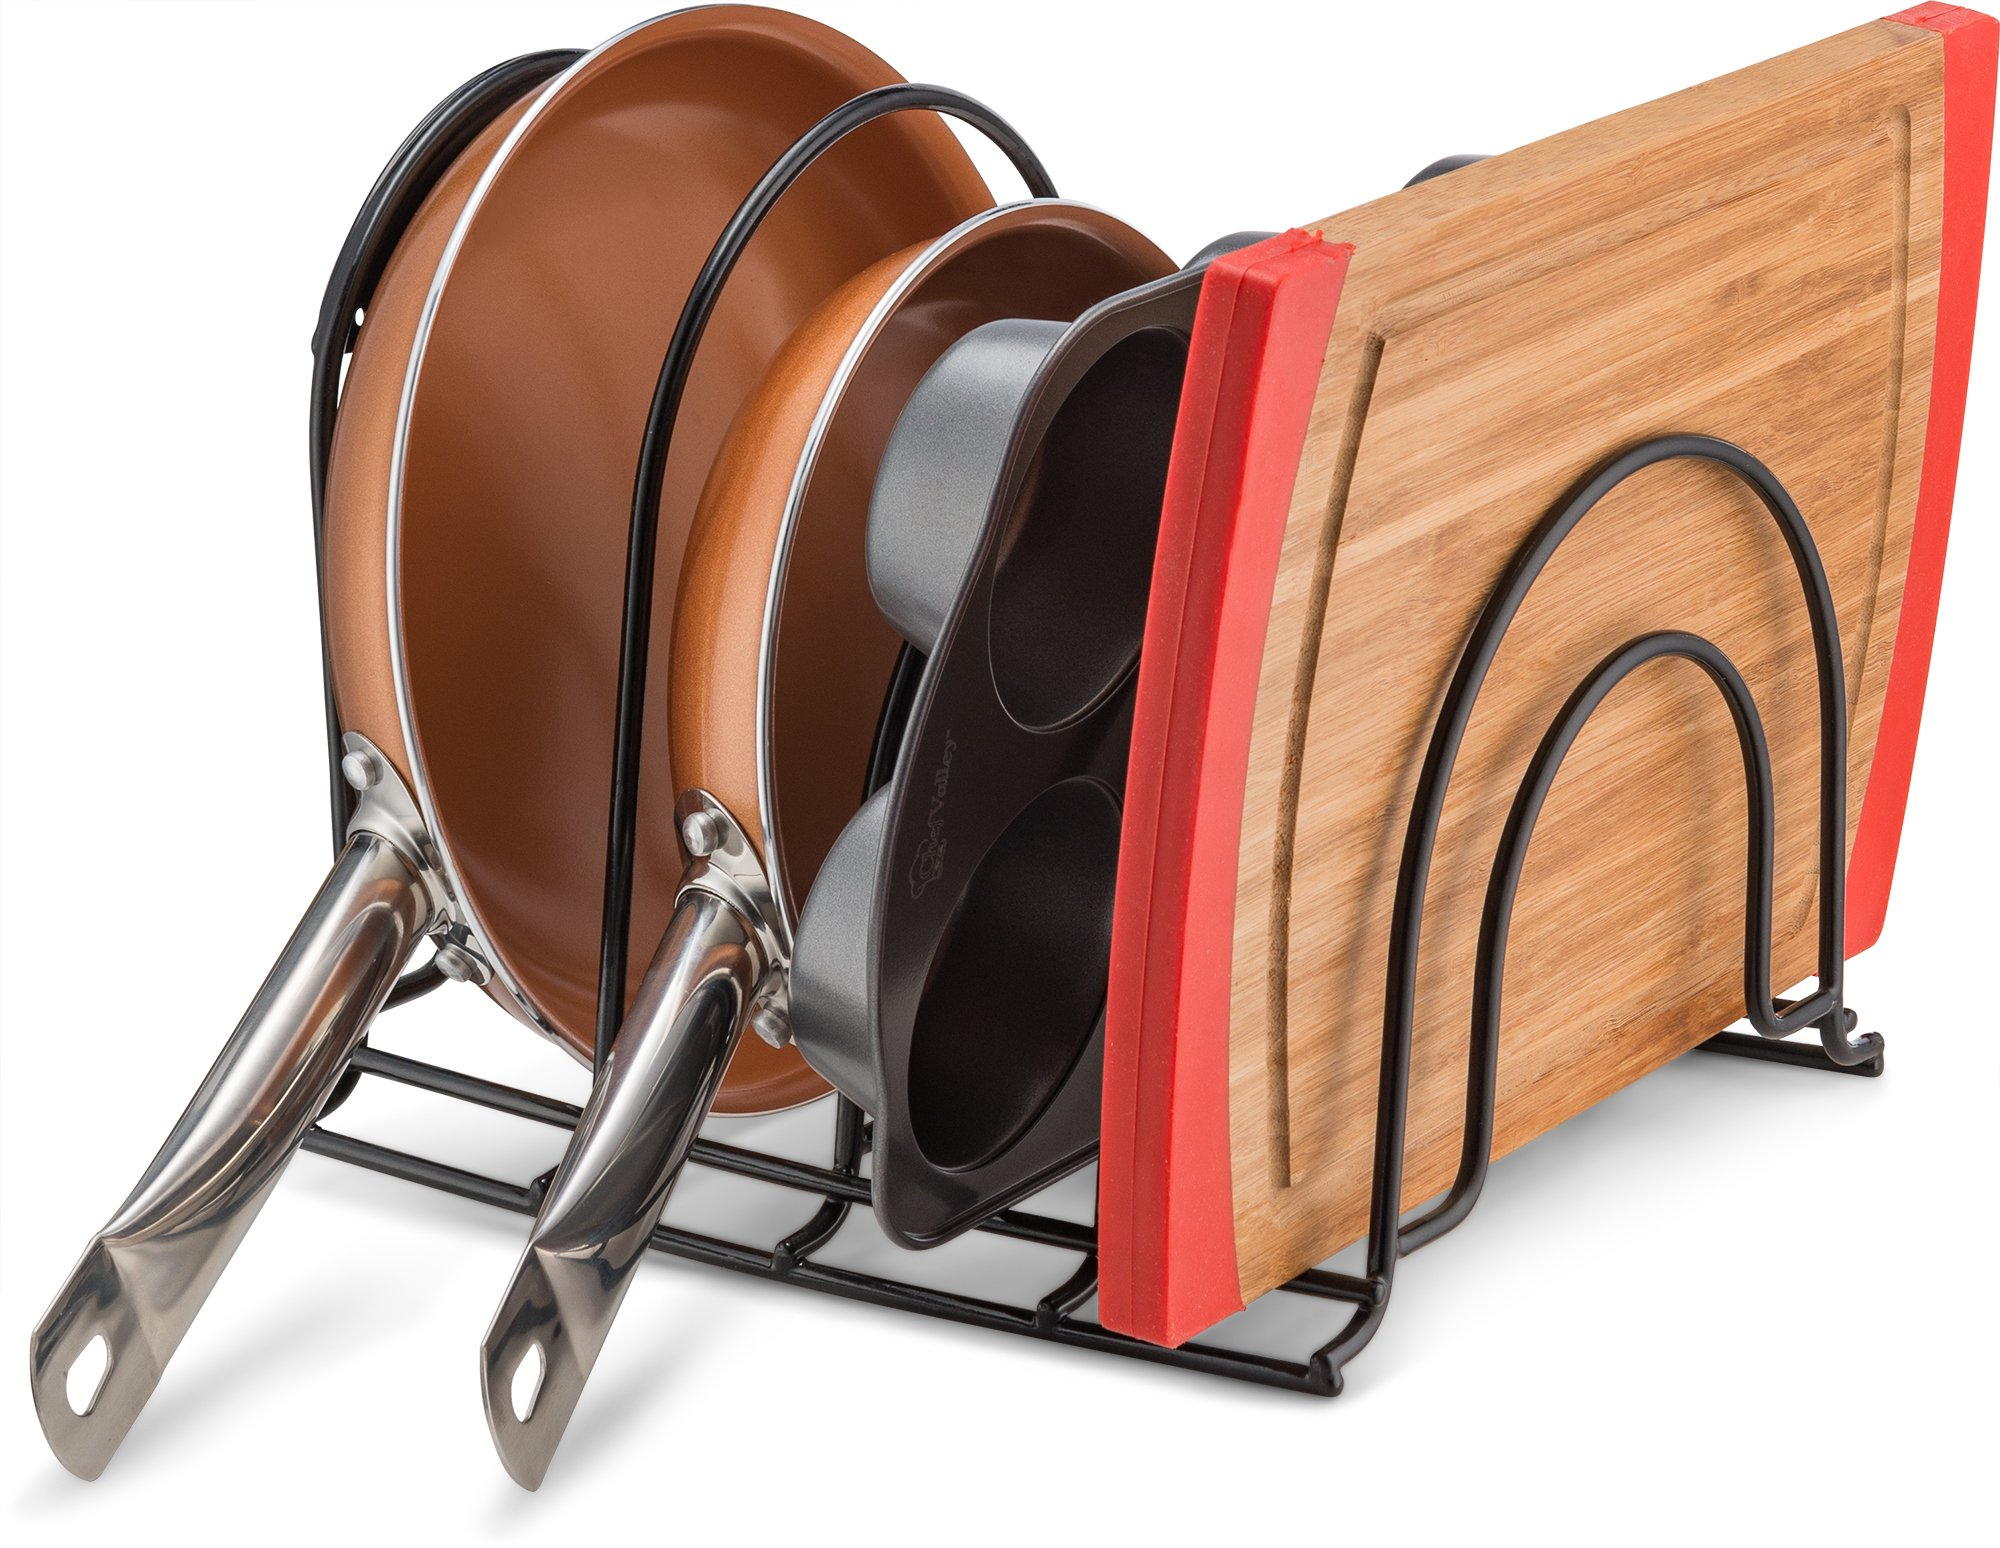 Pan Organizer Rack - Kitchen Closet Storage for Pots, Pans and Lids - Holds Up to 8 Items - Easy Screw or Adhesive Installation - by Bovado USA by Bovado USA (Image #2)